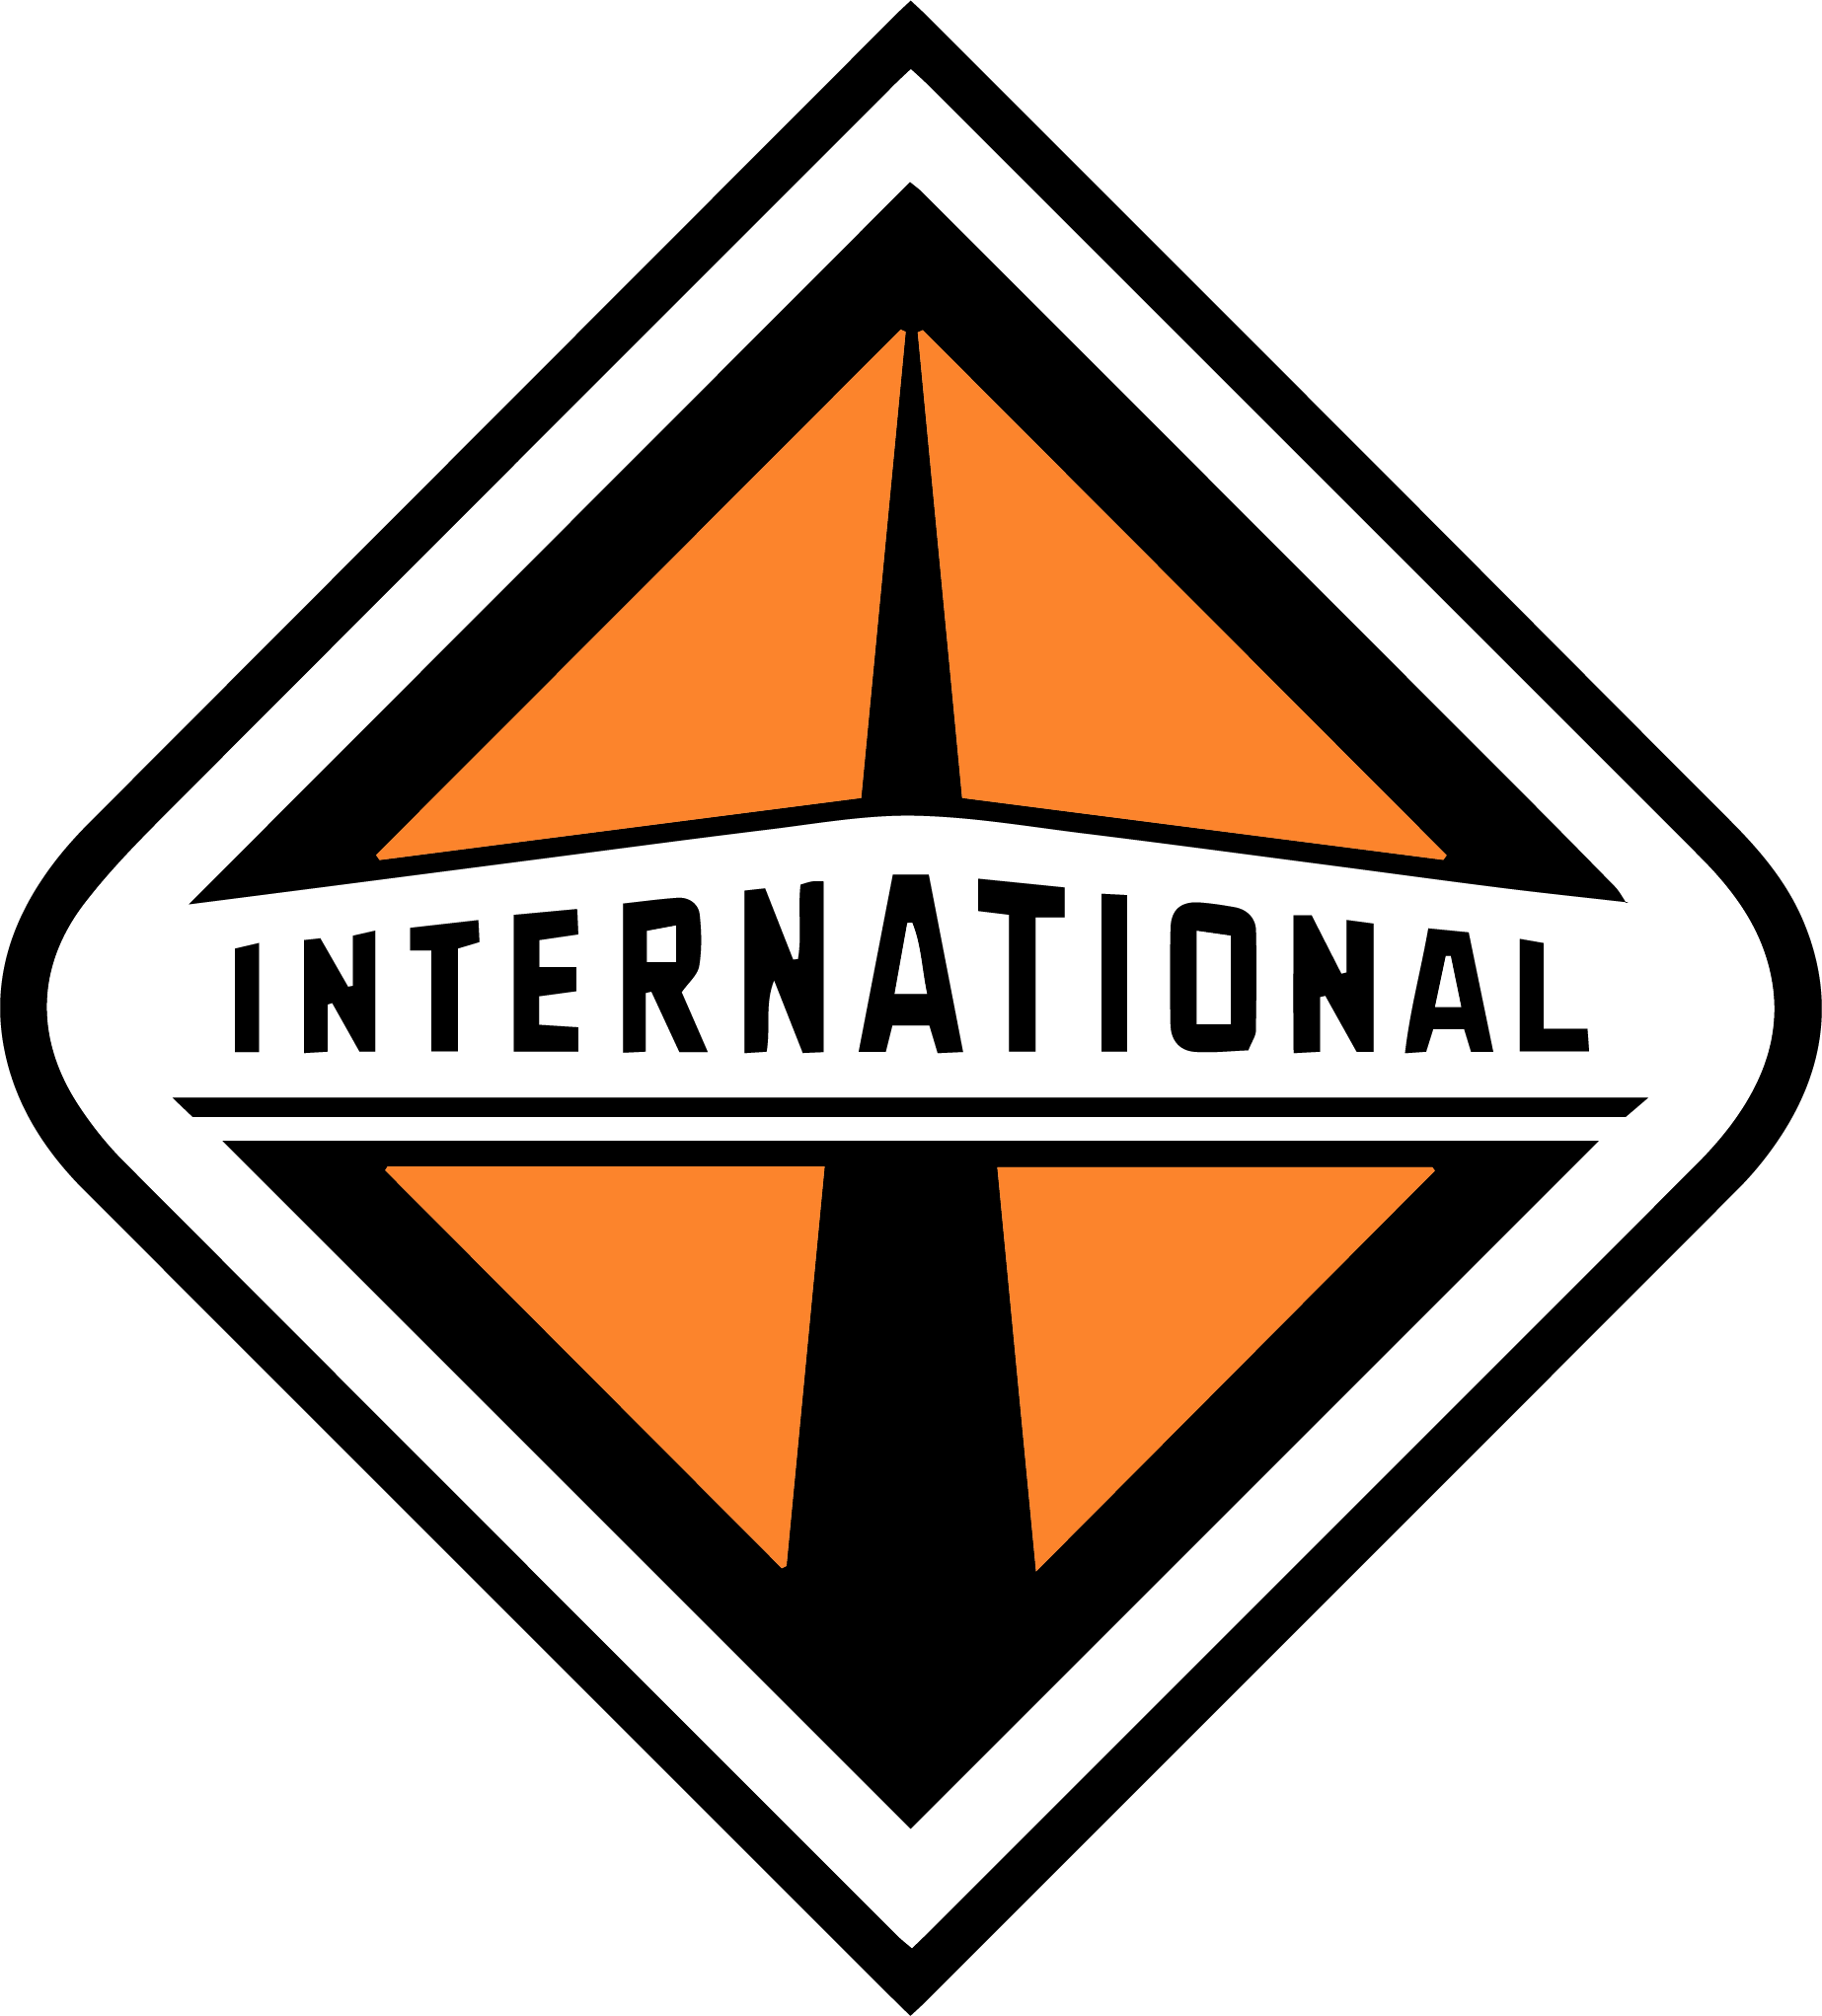 International Truck Logo Png Real Clipart And Vector